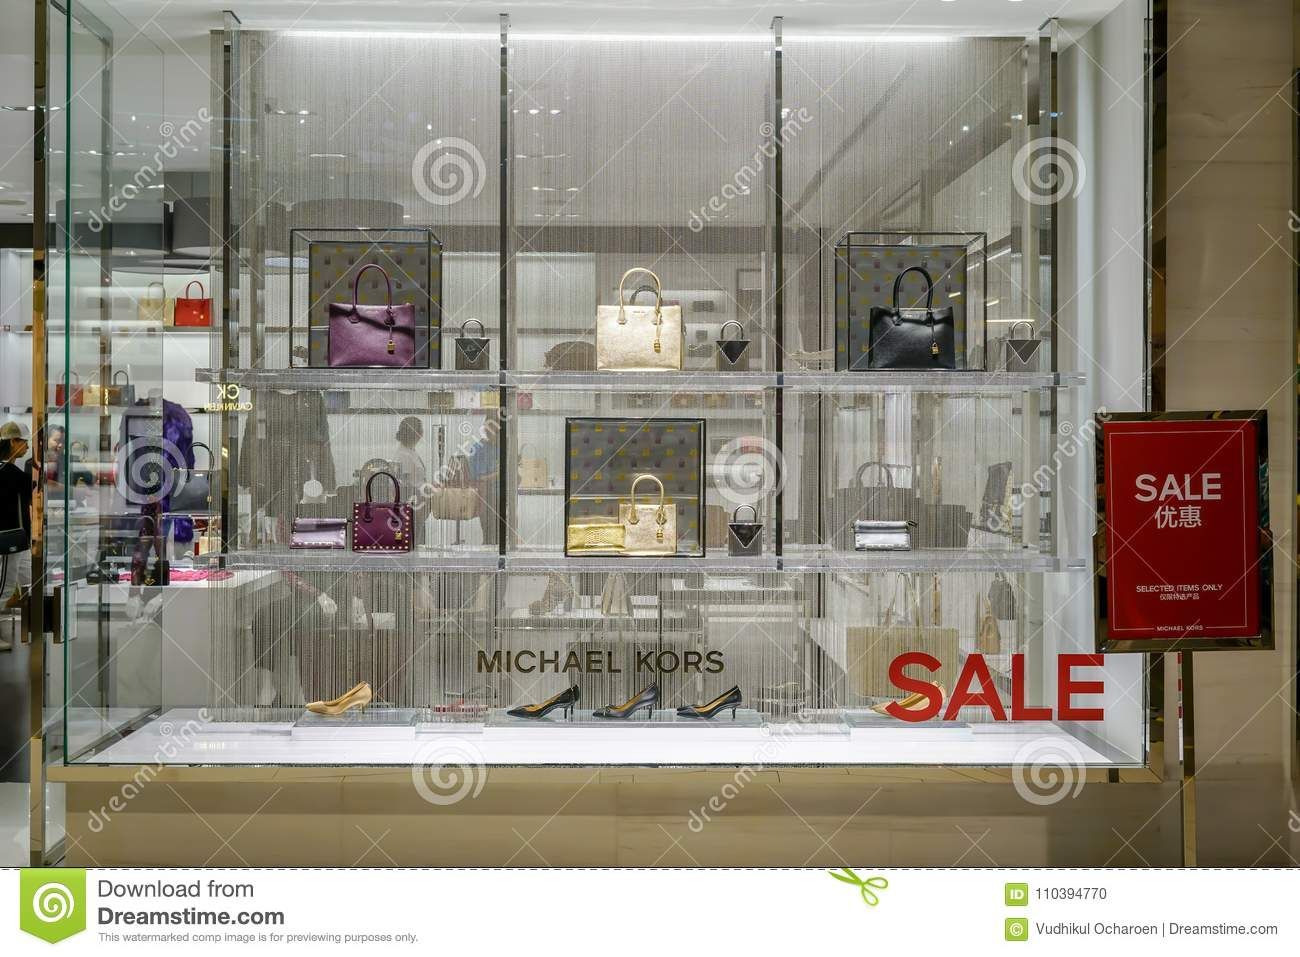 647faa5f4b5f Michael Kors shop at Emquatier, Bangkok, Thailand, Nov 25, 2017 : Luxury  and fashionable brand window display. Casual woman bags and shoes on sales  in front ...